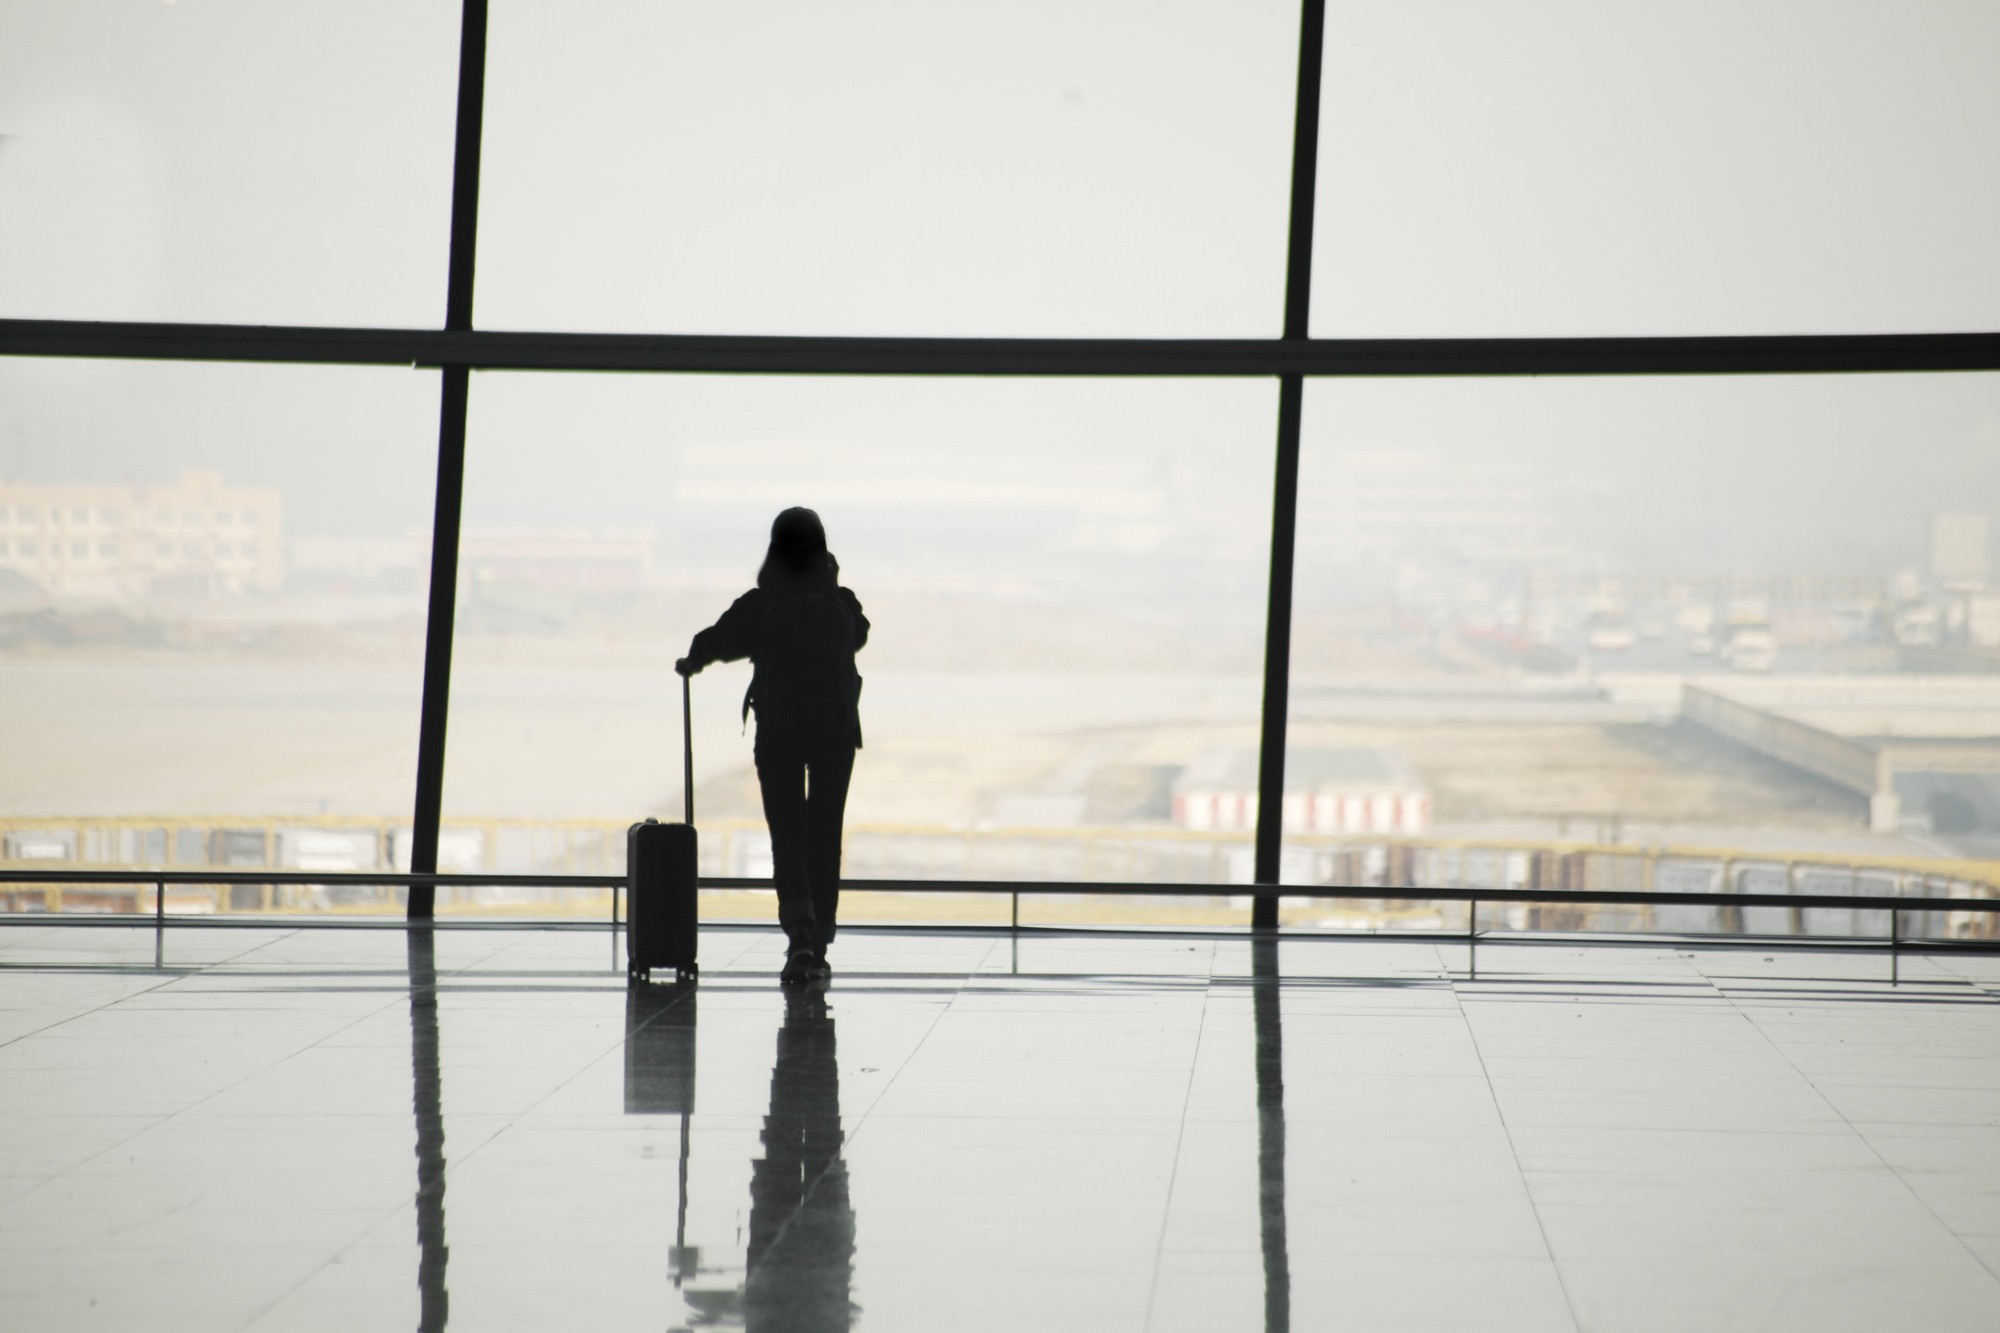 Dicas de aeroporto - Argo Solutions - Simplifying your journey